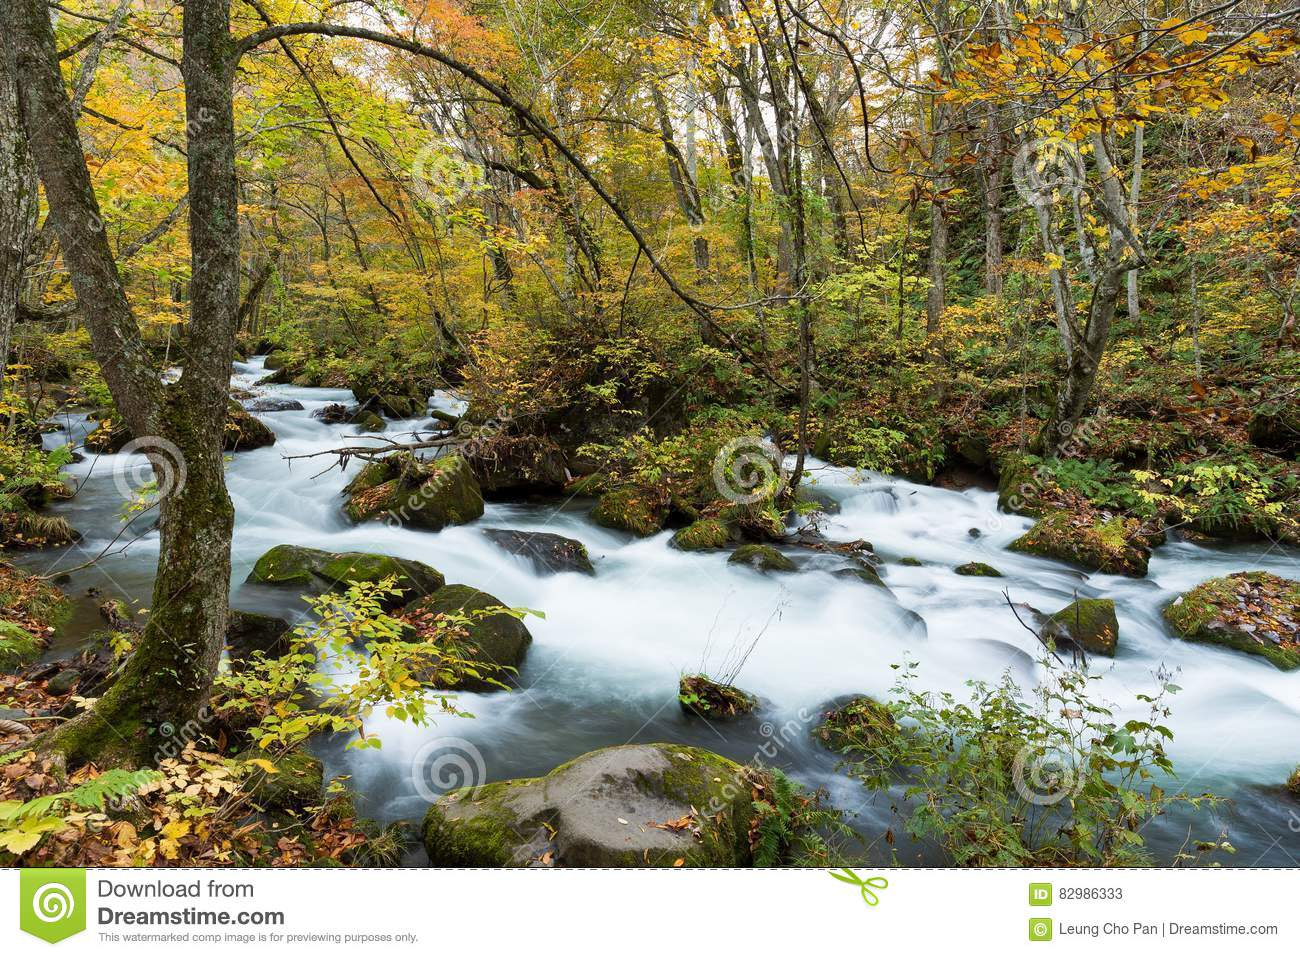 Oirase Stream in autumn